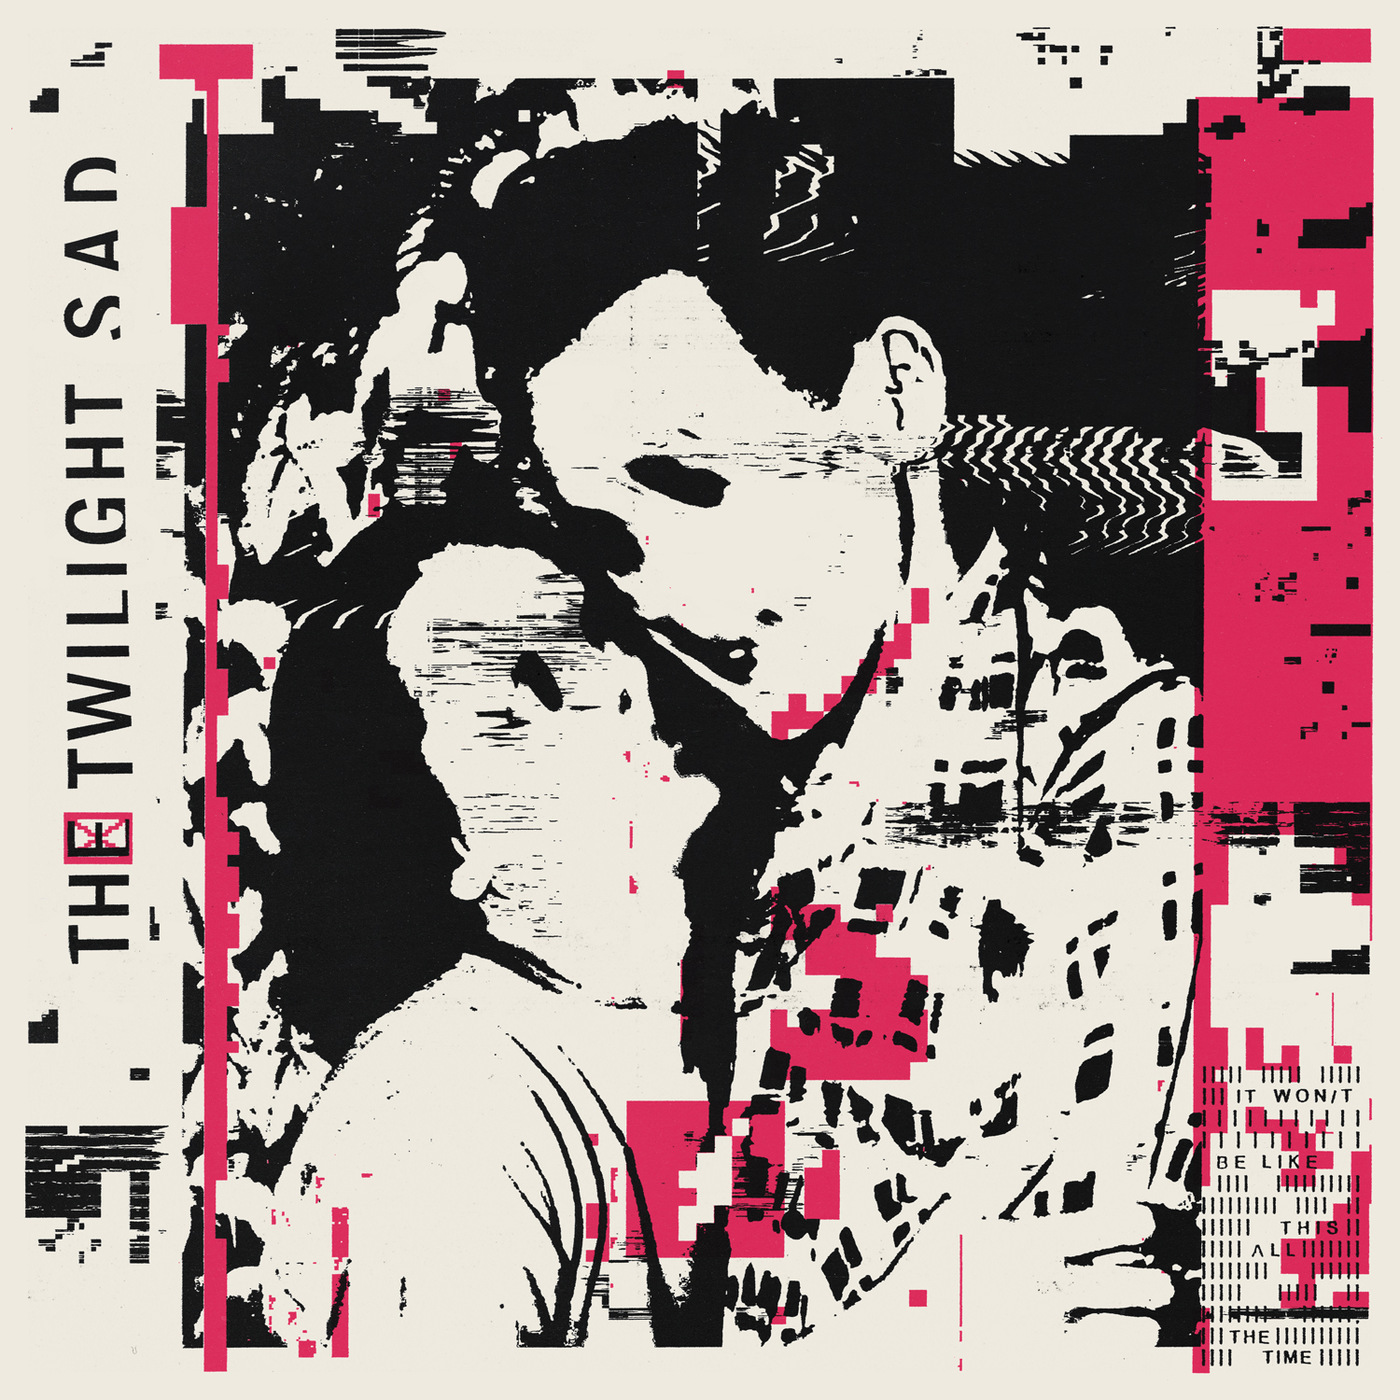 The Twilight Sad - It Wont Be Like This All the Time (2019) [24 44 FLAC]